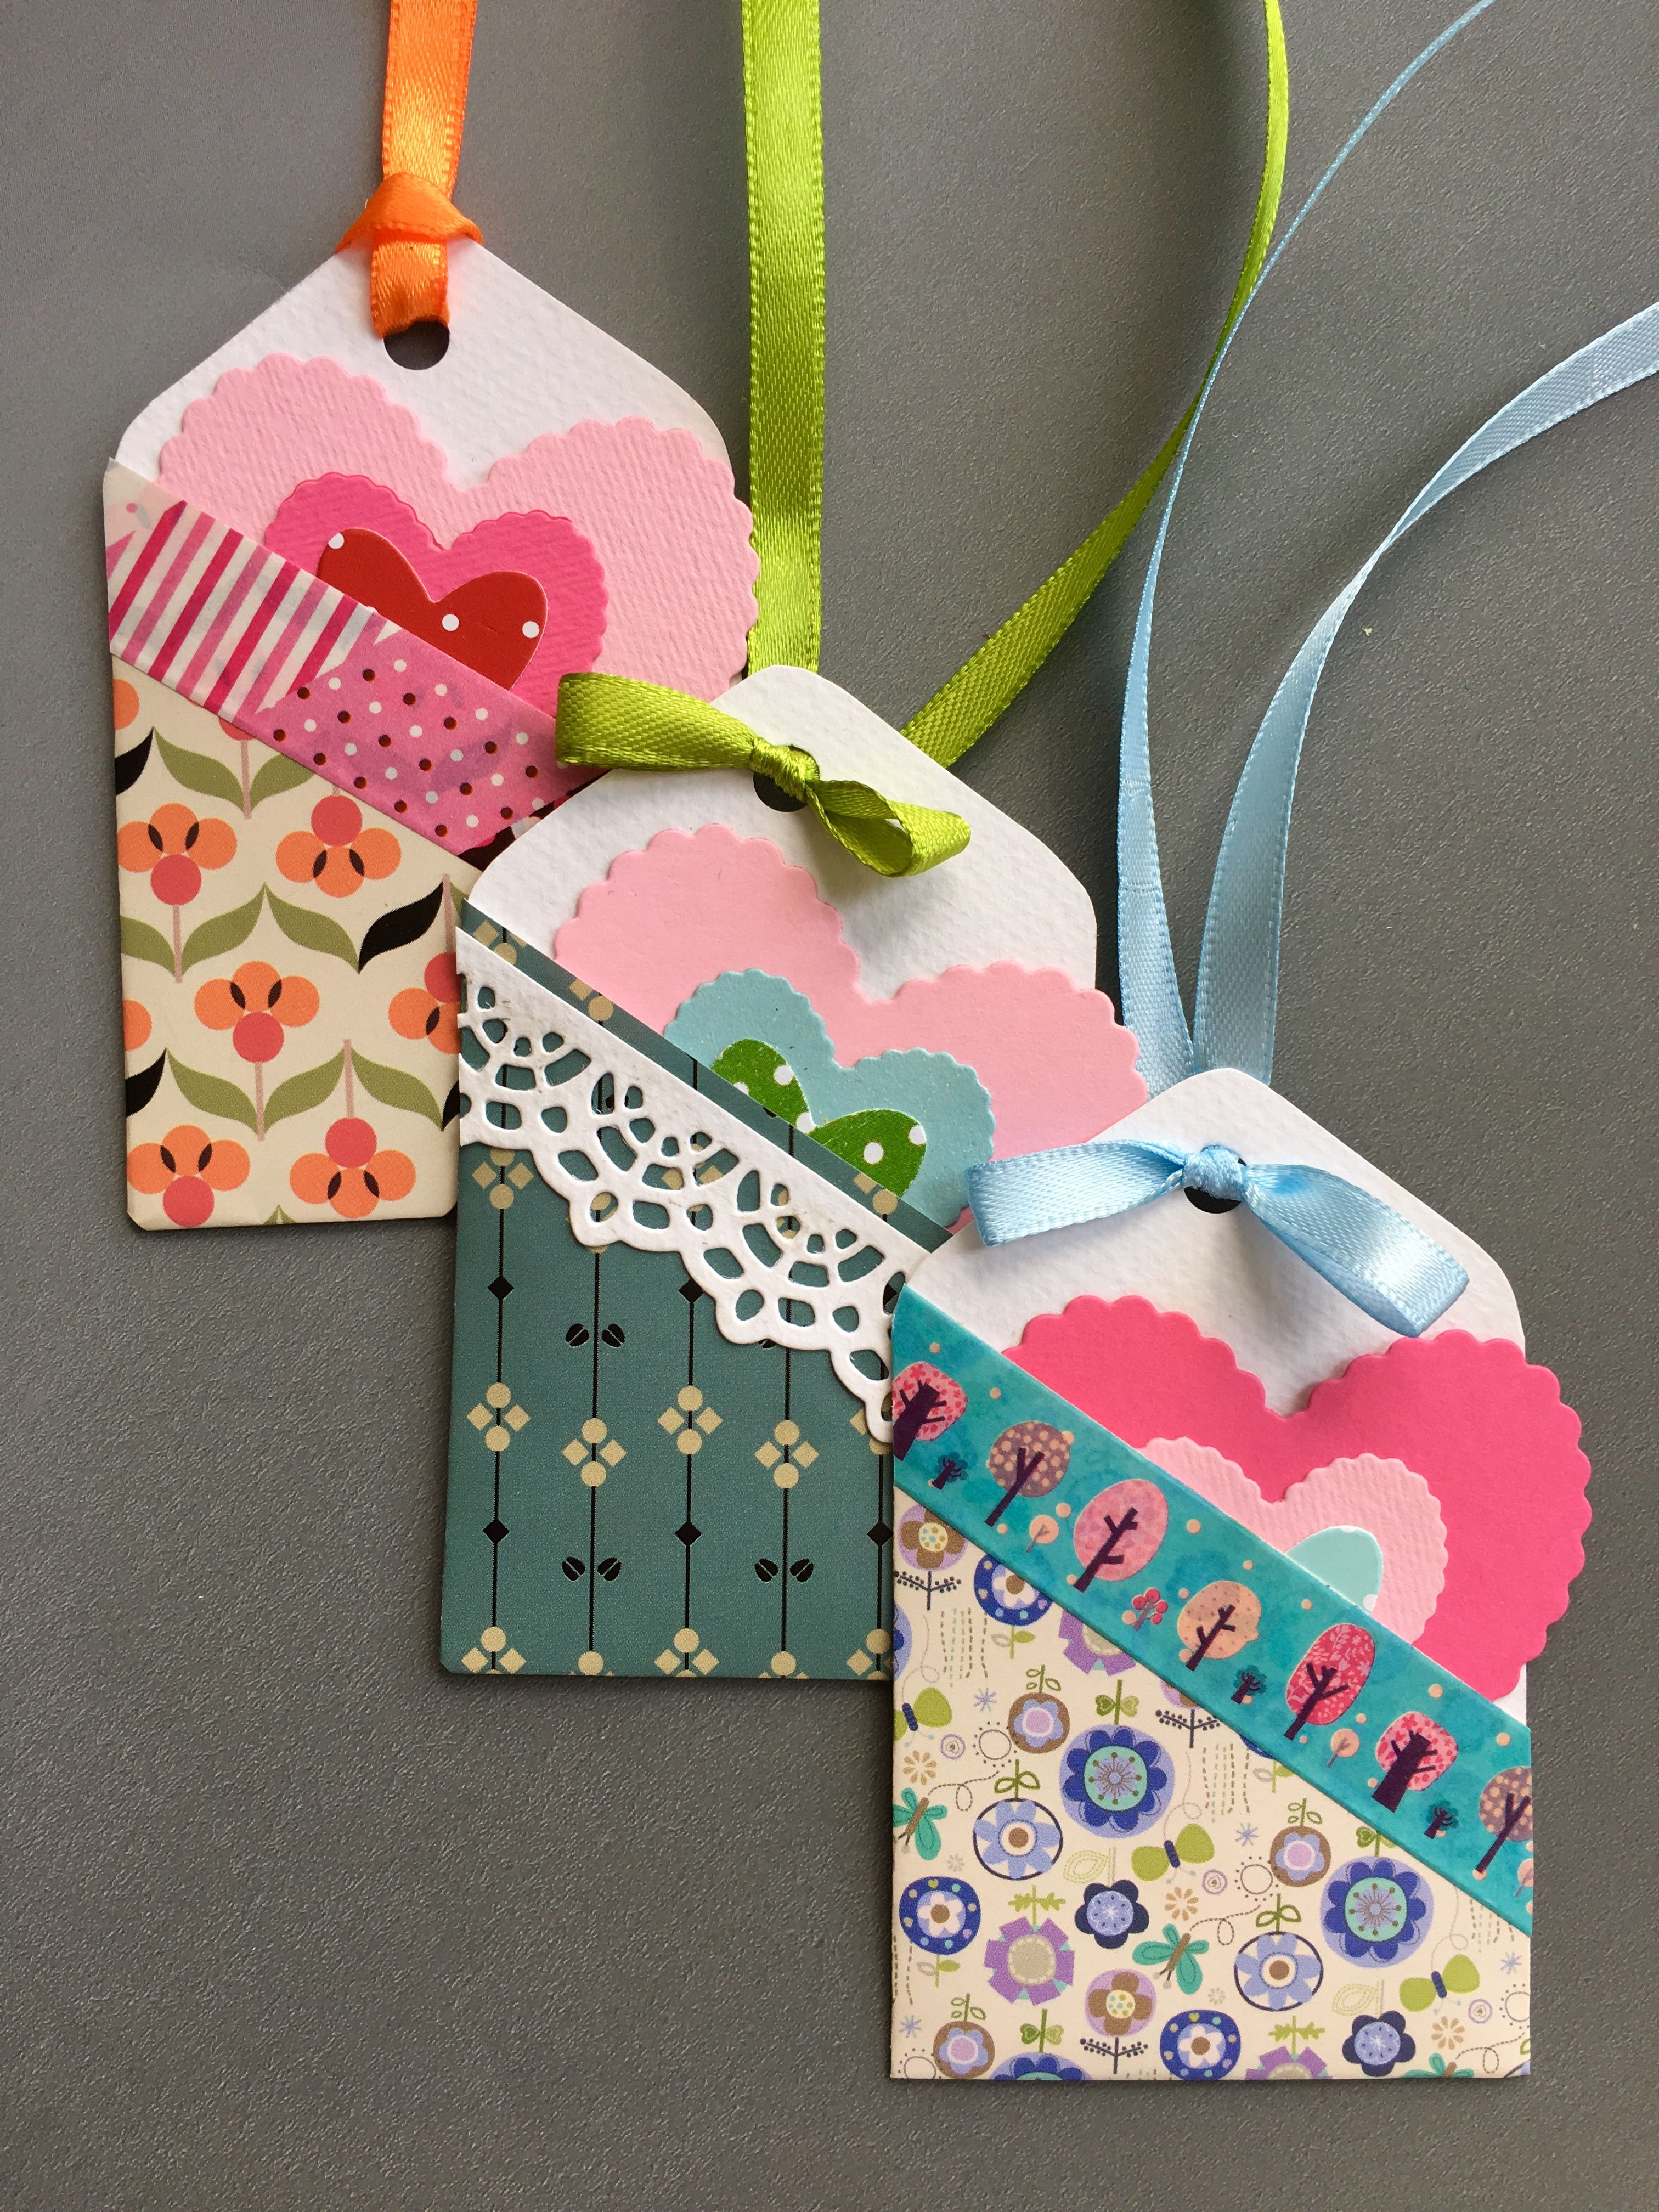 Easy To Make Pocketed Gift Tags The Paper Heart In 2020 Gift Tags Diy Scrapbook Paper Crafts Diy Scrapbook Paper Crafts